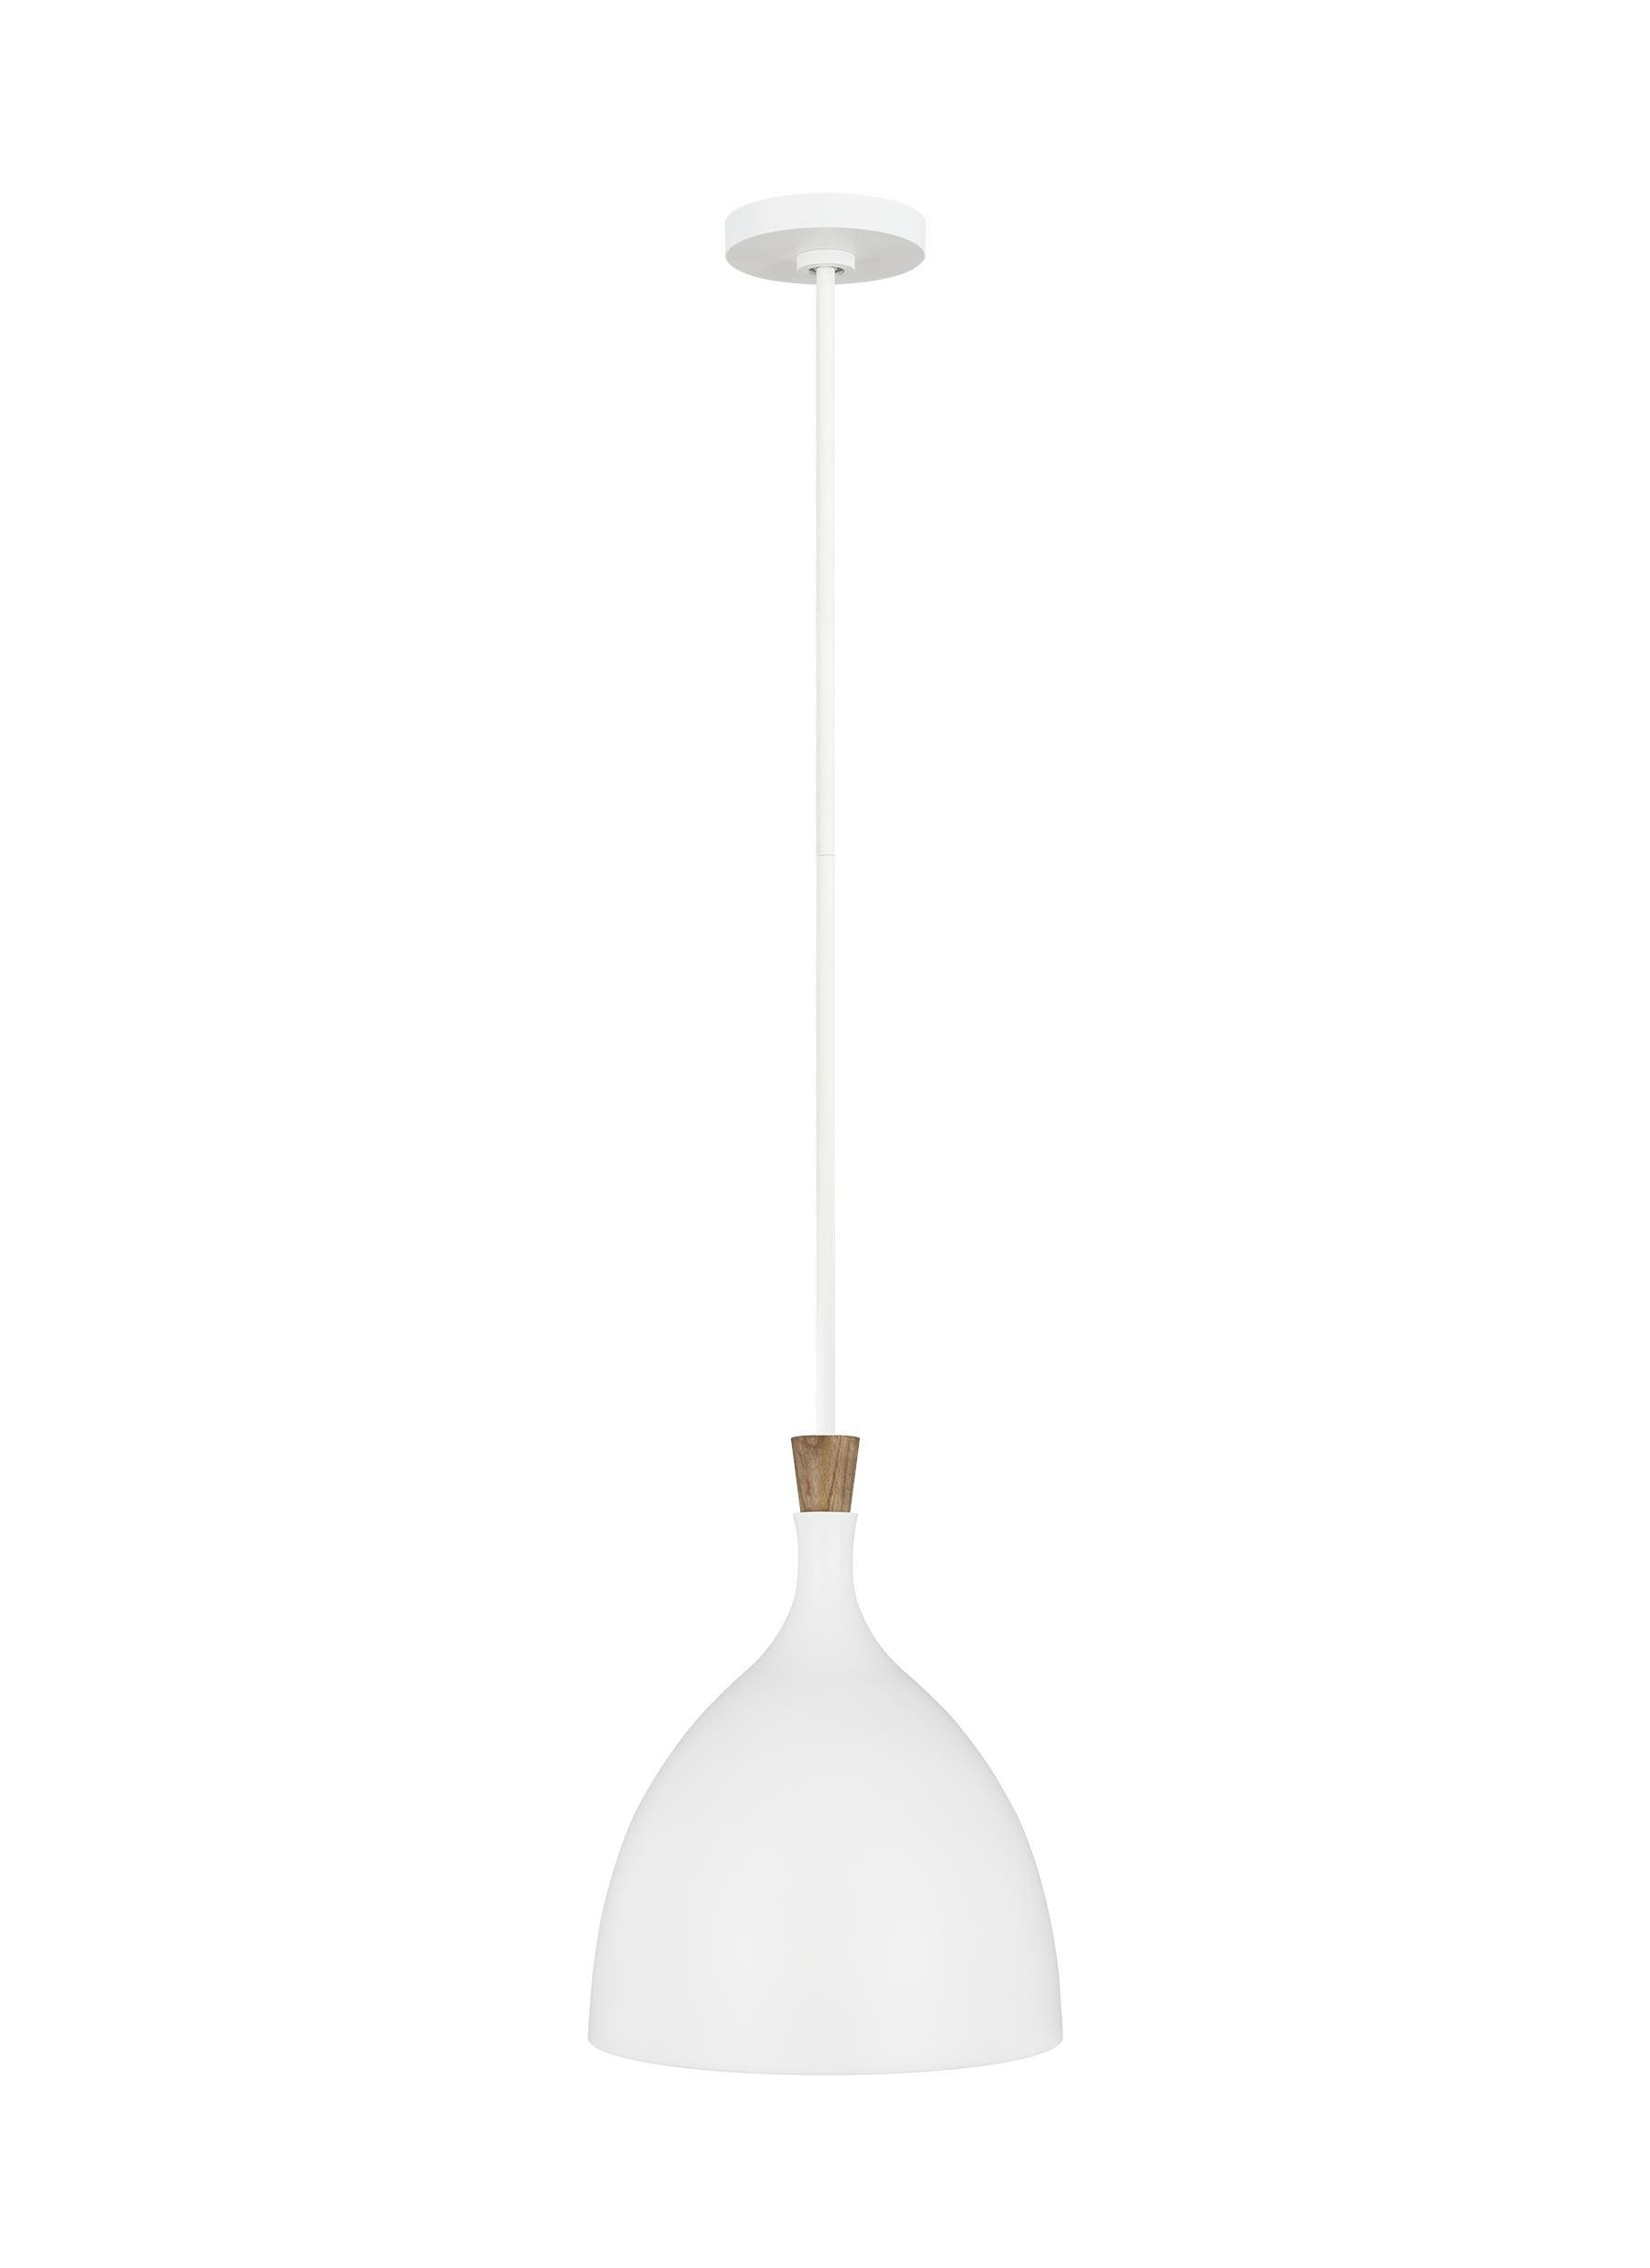 Most Up To Date Darwin 1 Light Single Dome Pendant Throughout Monadnock 1 Light Single Dome Pendants (View 20 of 25)